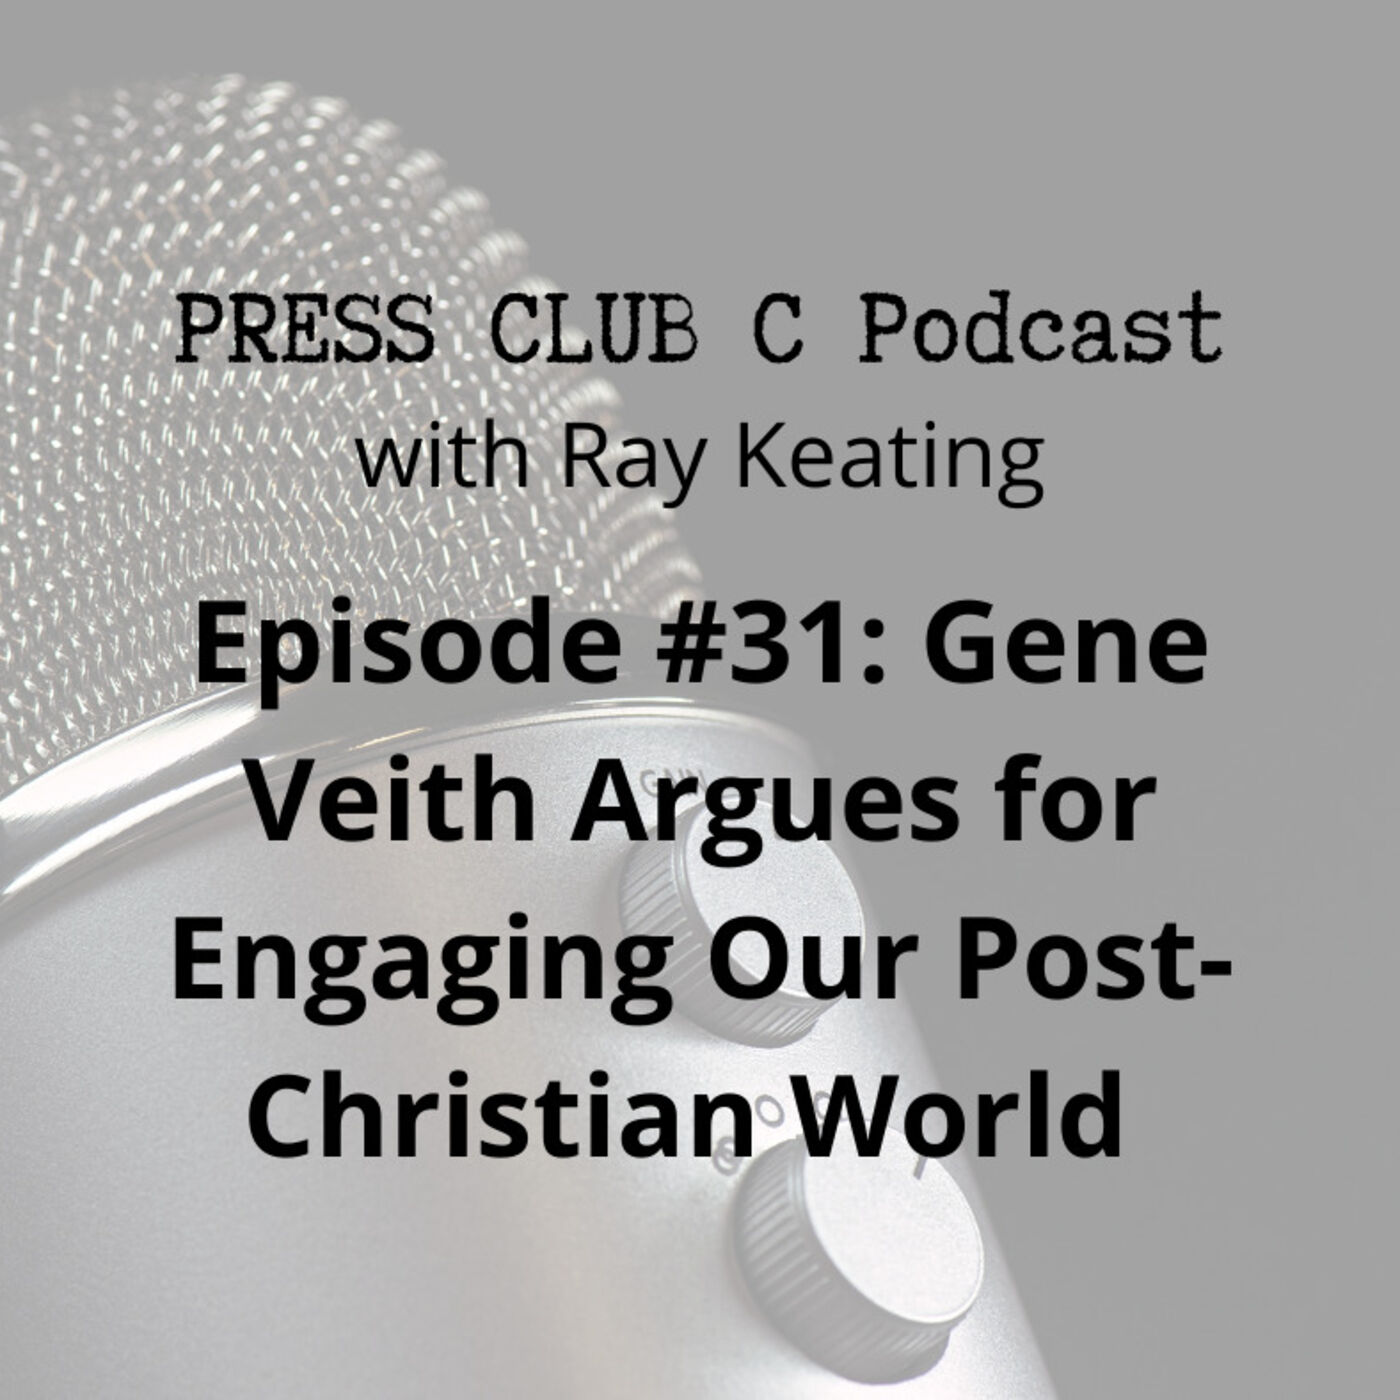 Episode #31: Gene Veith Argues for Engaging Our Post-Christian World